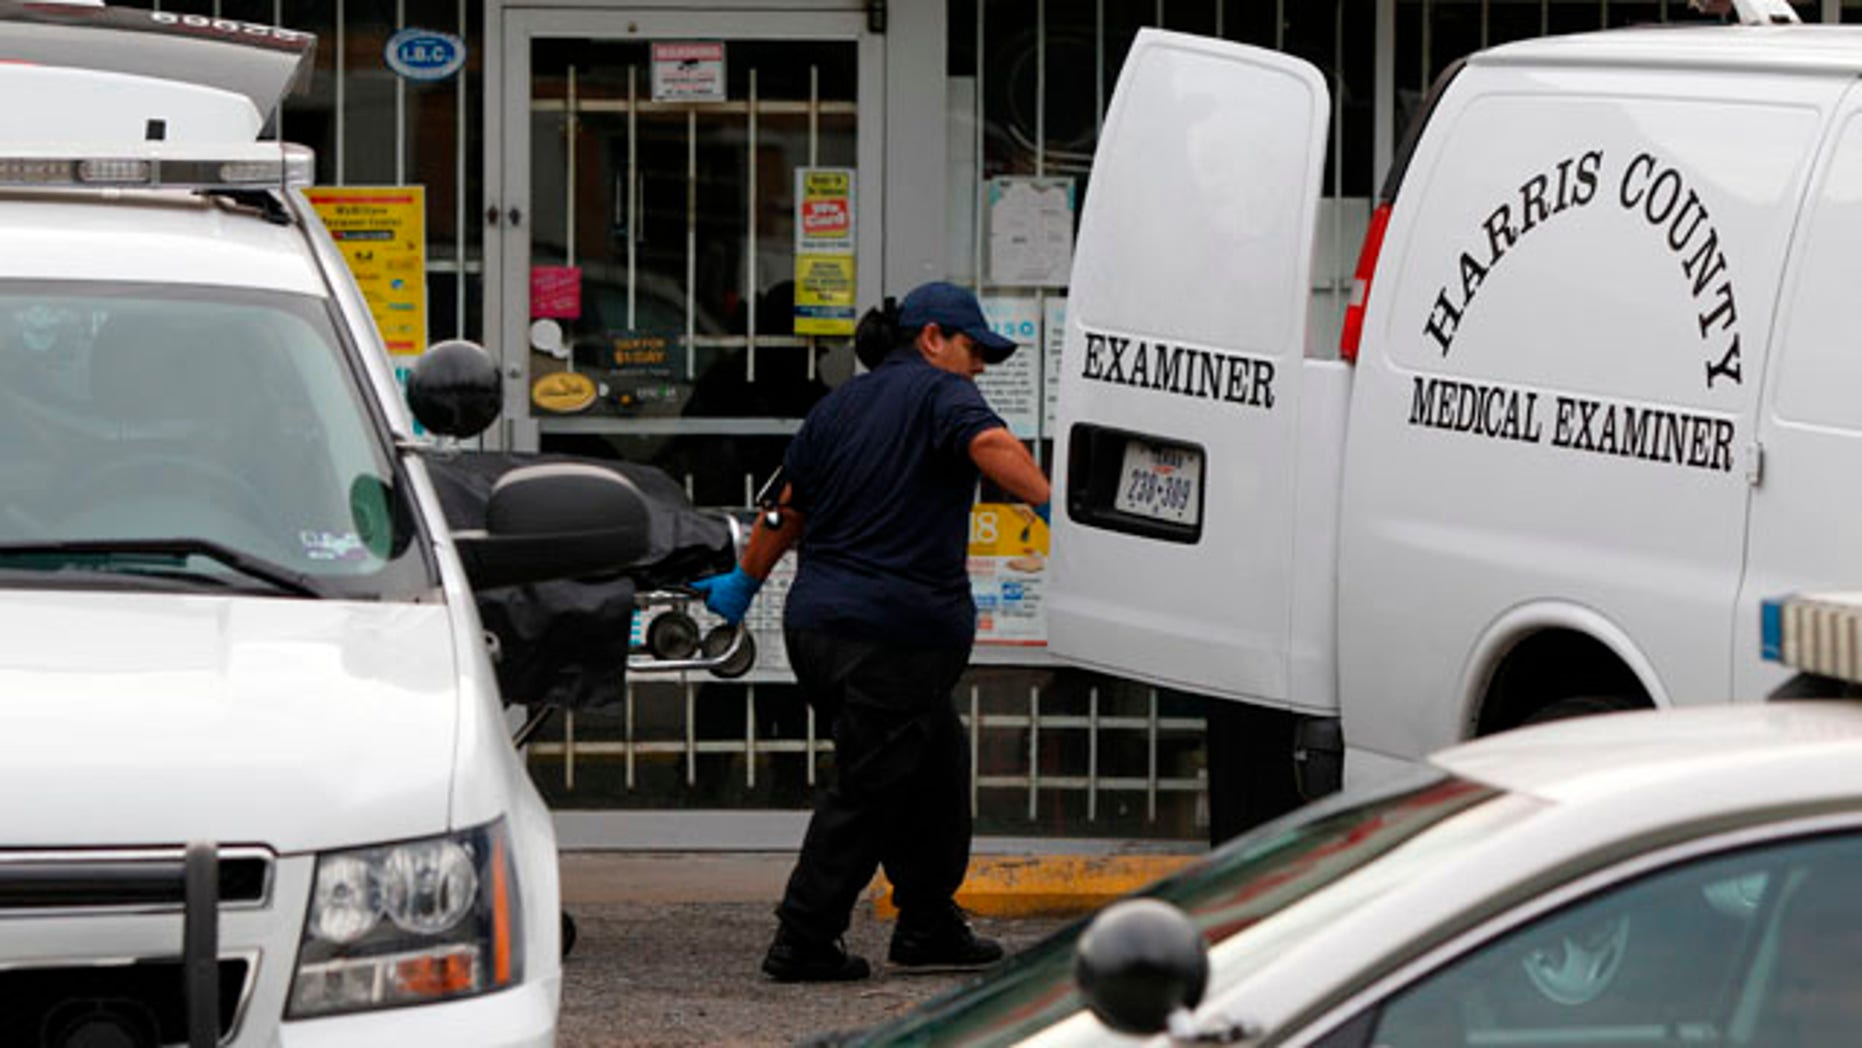 Sept. 19: Harris County Medical Examiner personnel remove one of three bodies from the scene.